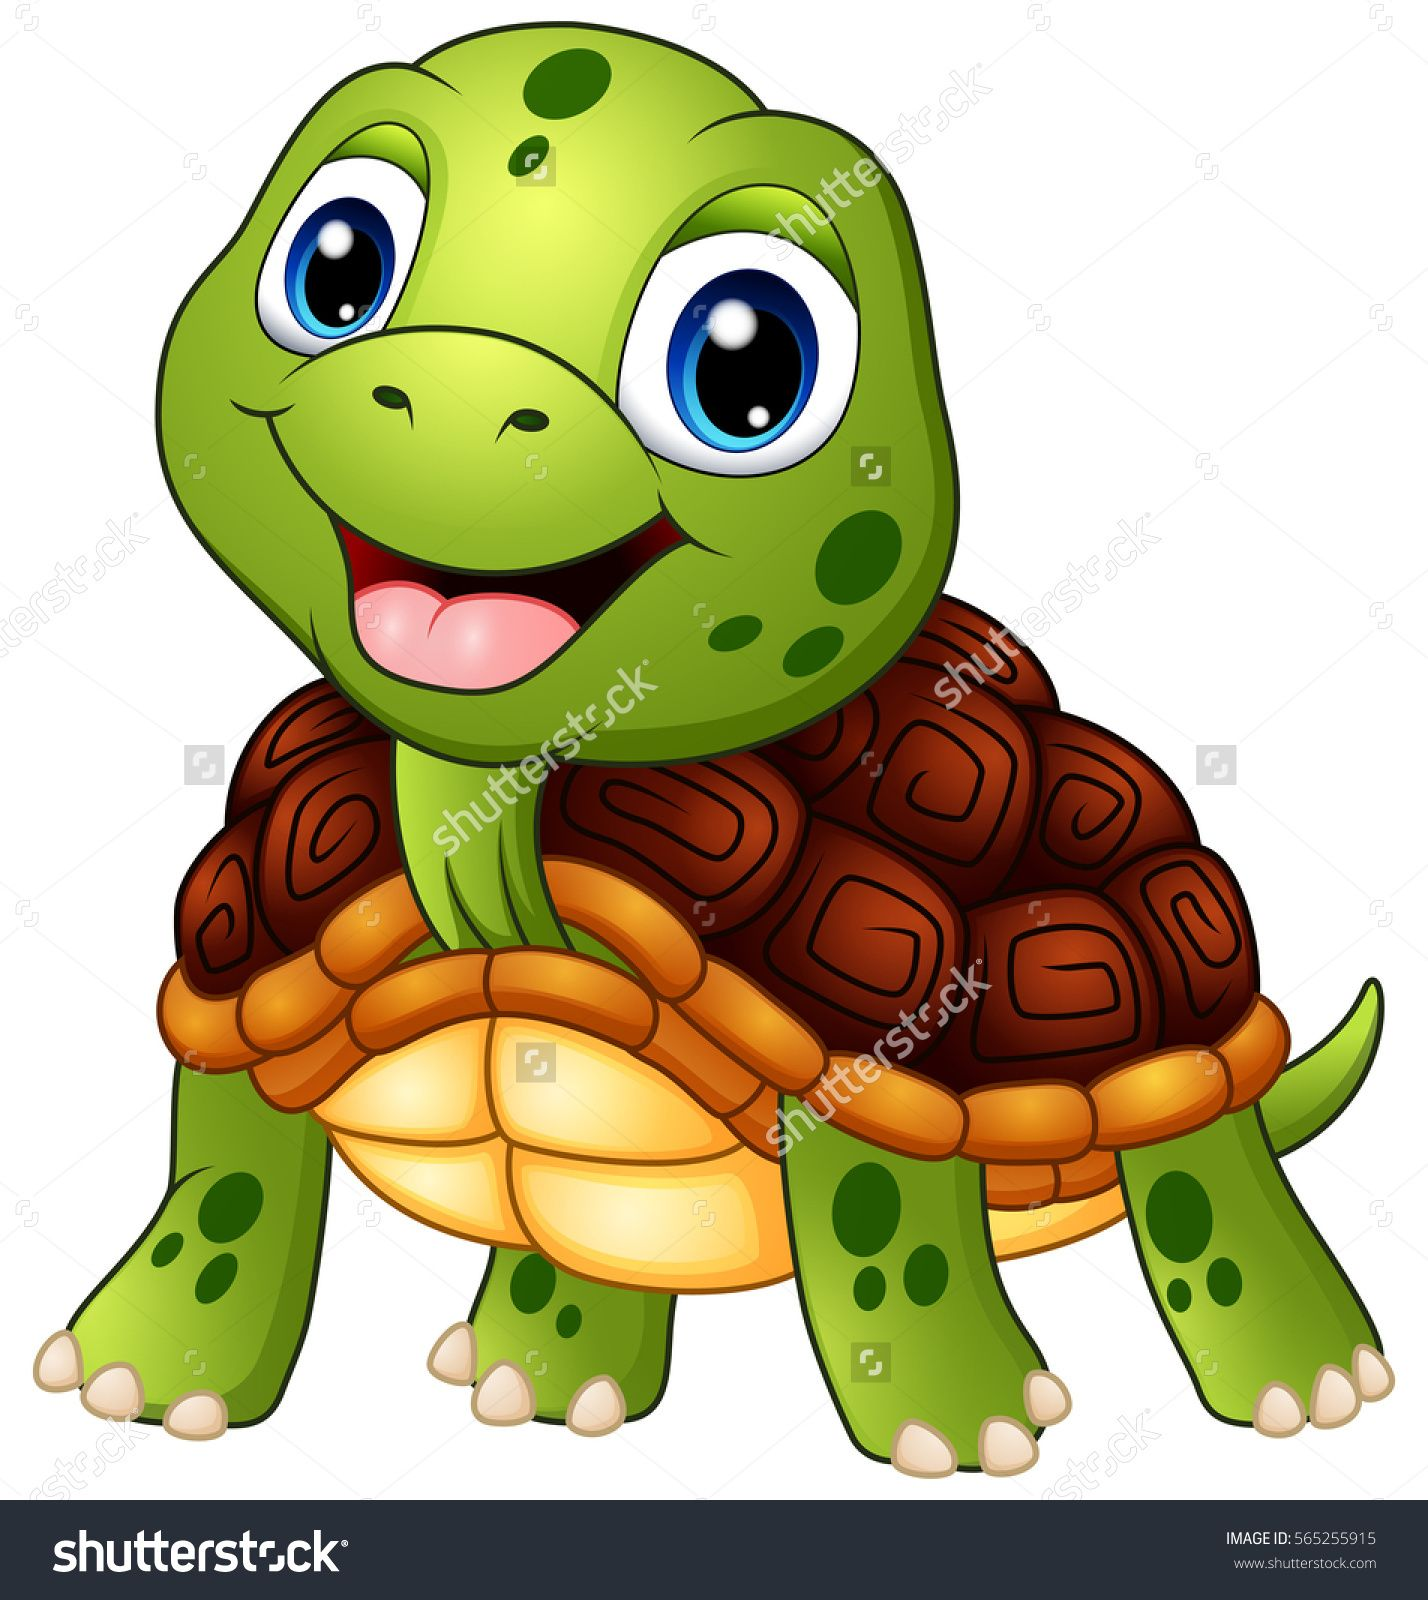 1428x1600 Vector Illustration Of Cute Turtle Cartoon Smiling Tortoise In